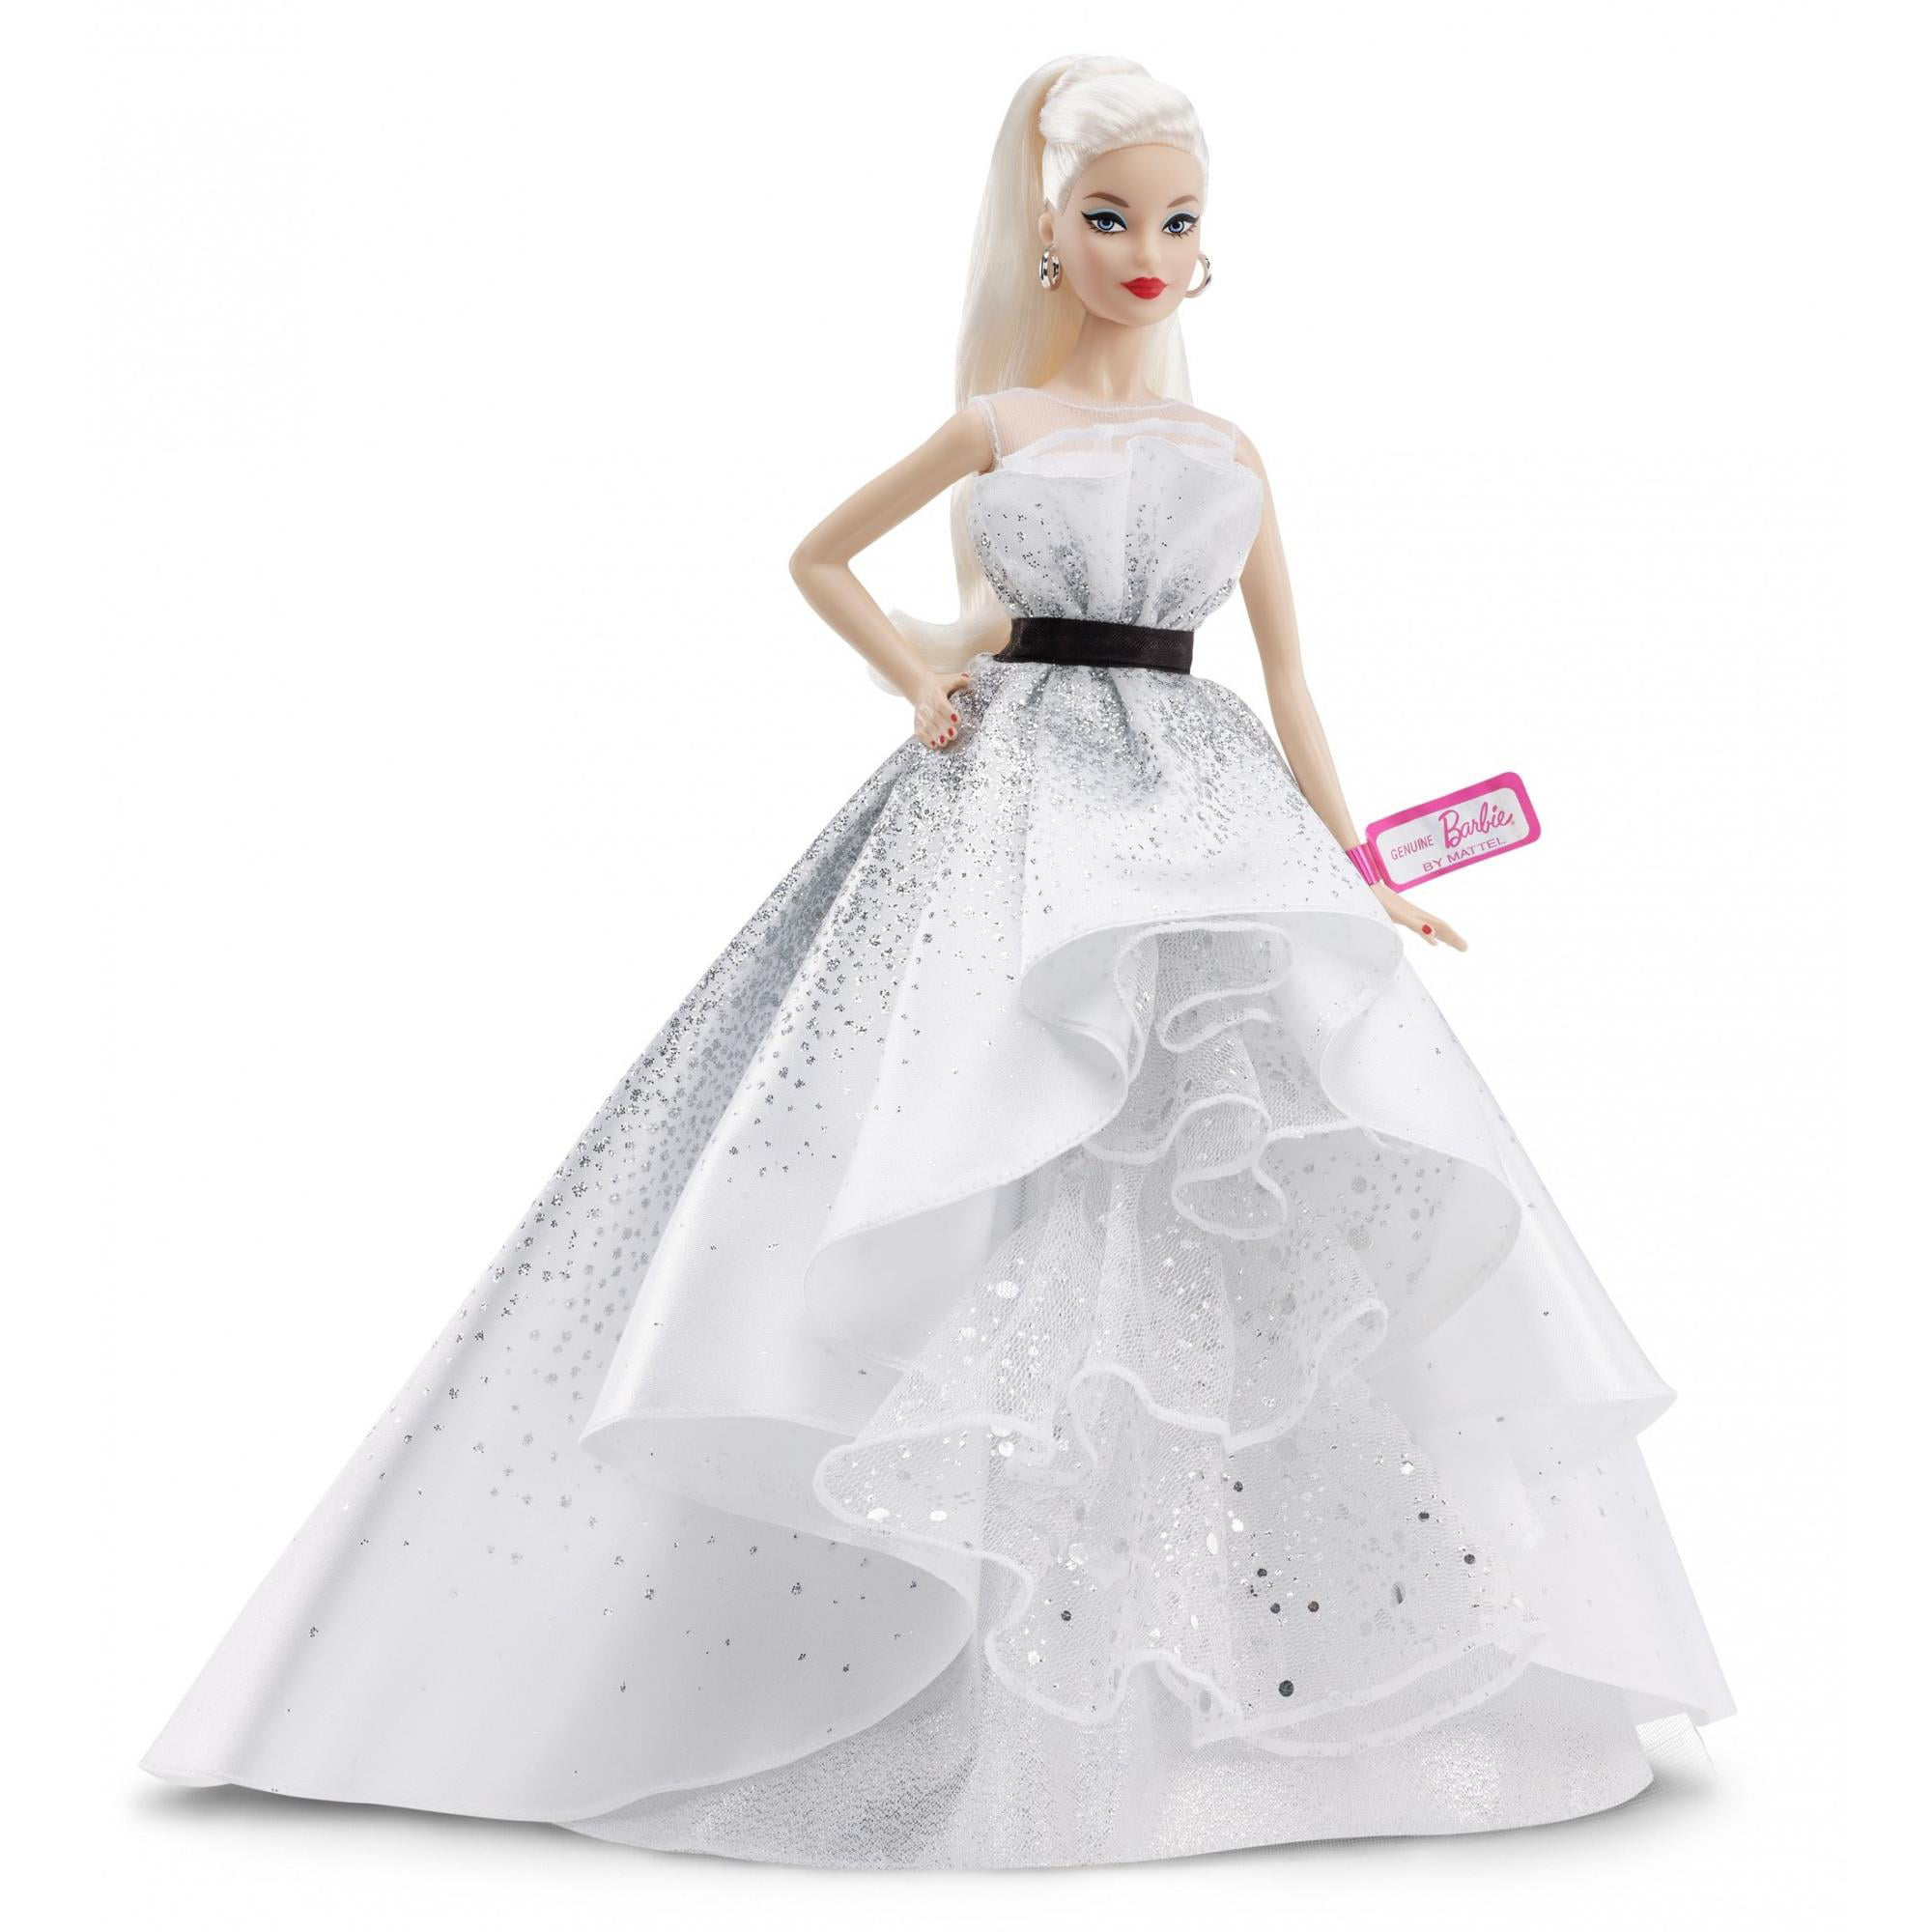 Barbie 60th Anniversary Doll, Blonde Hair & Diamond-Inspired Accents by Mattel